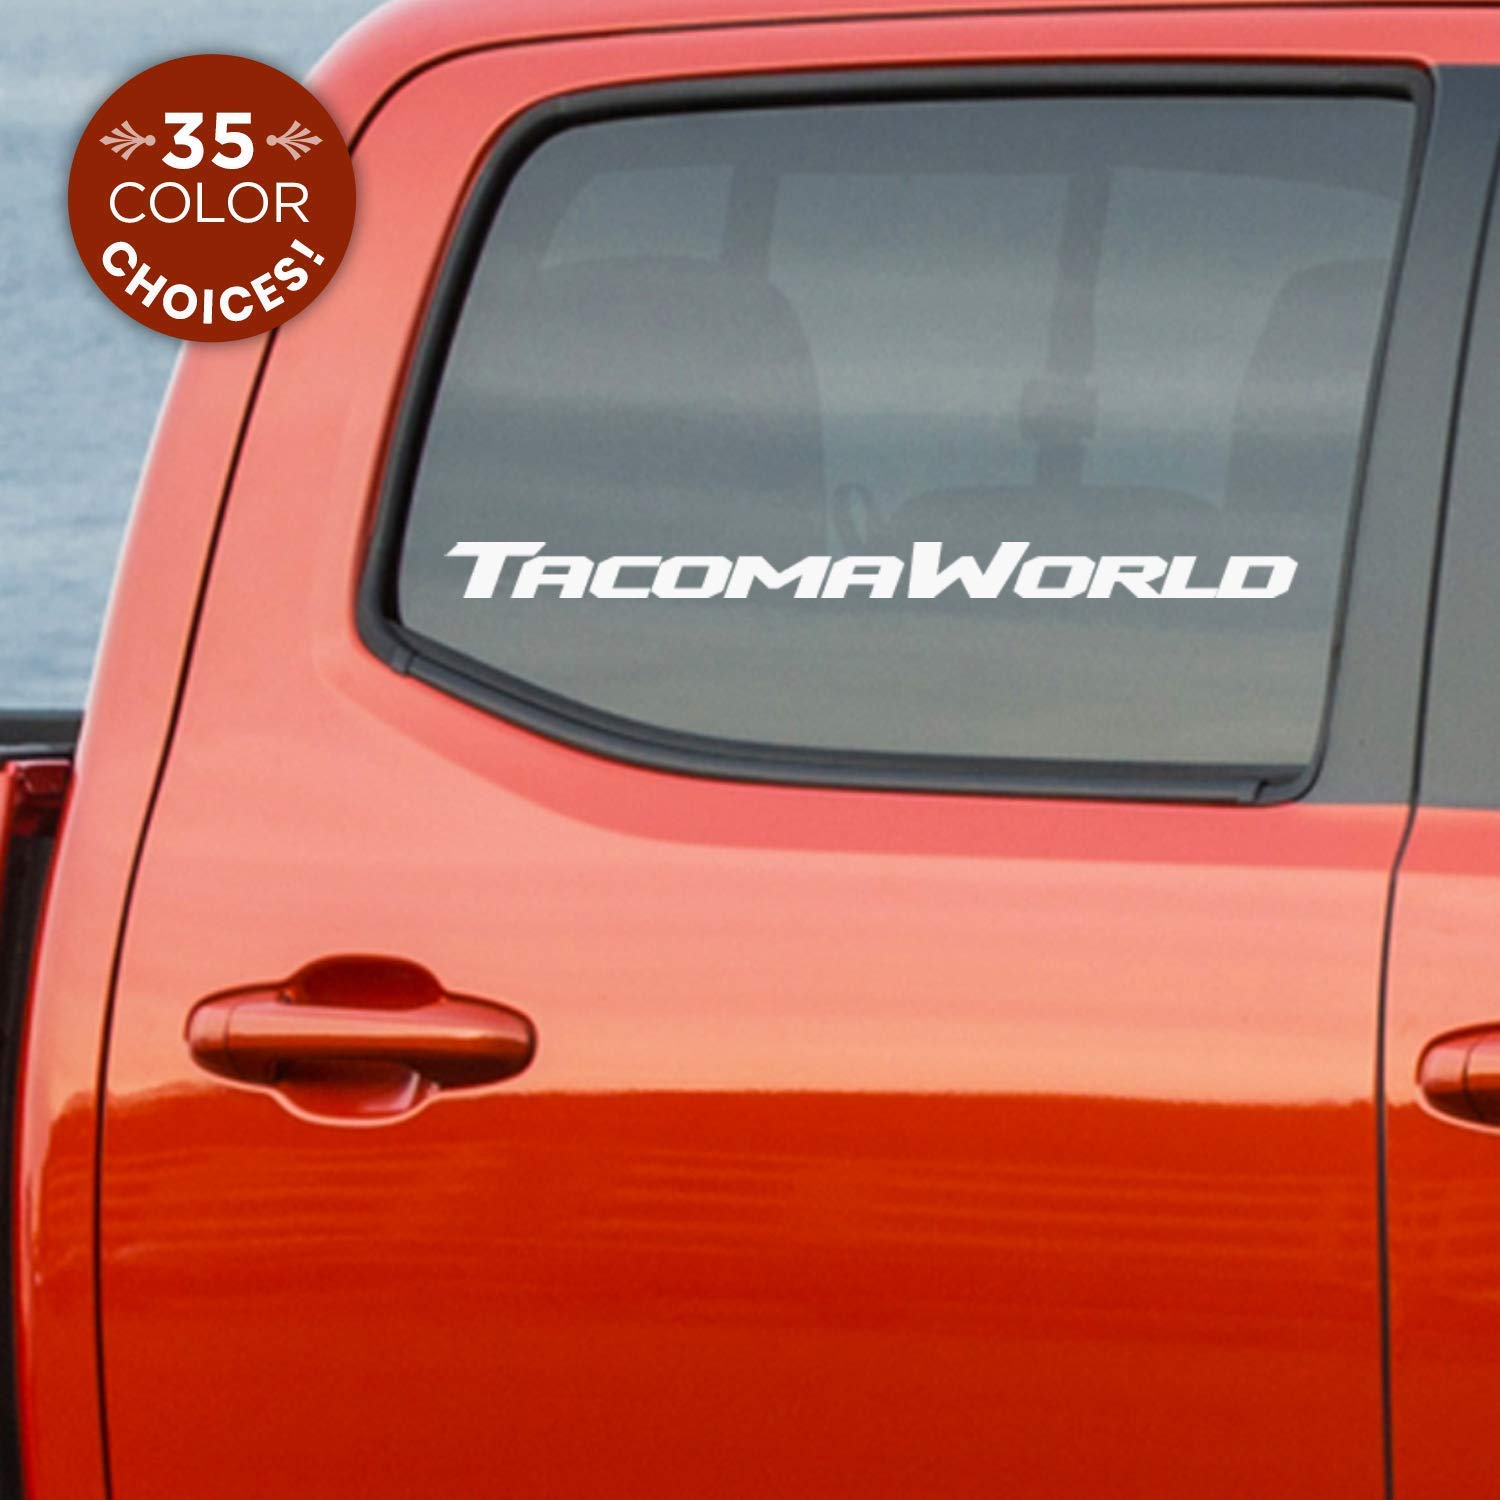 Amazon Com Toyota Tacoma World Car Decal Sticker For Fans Of